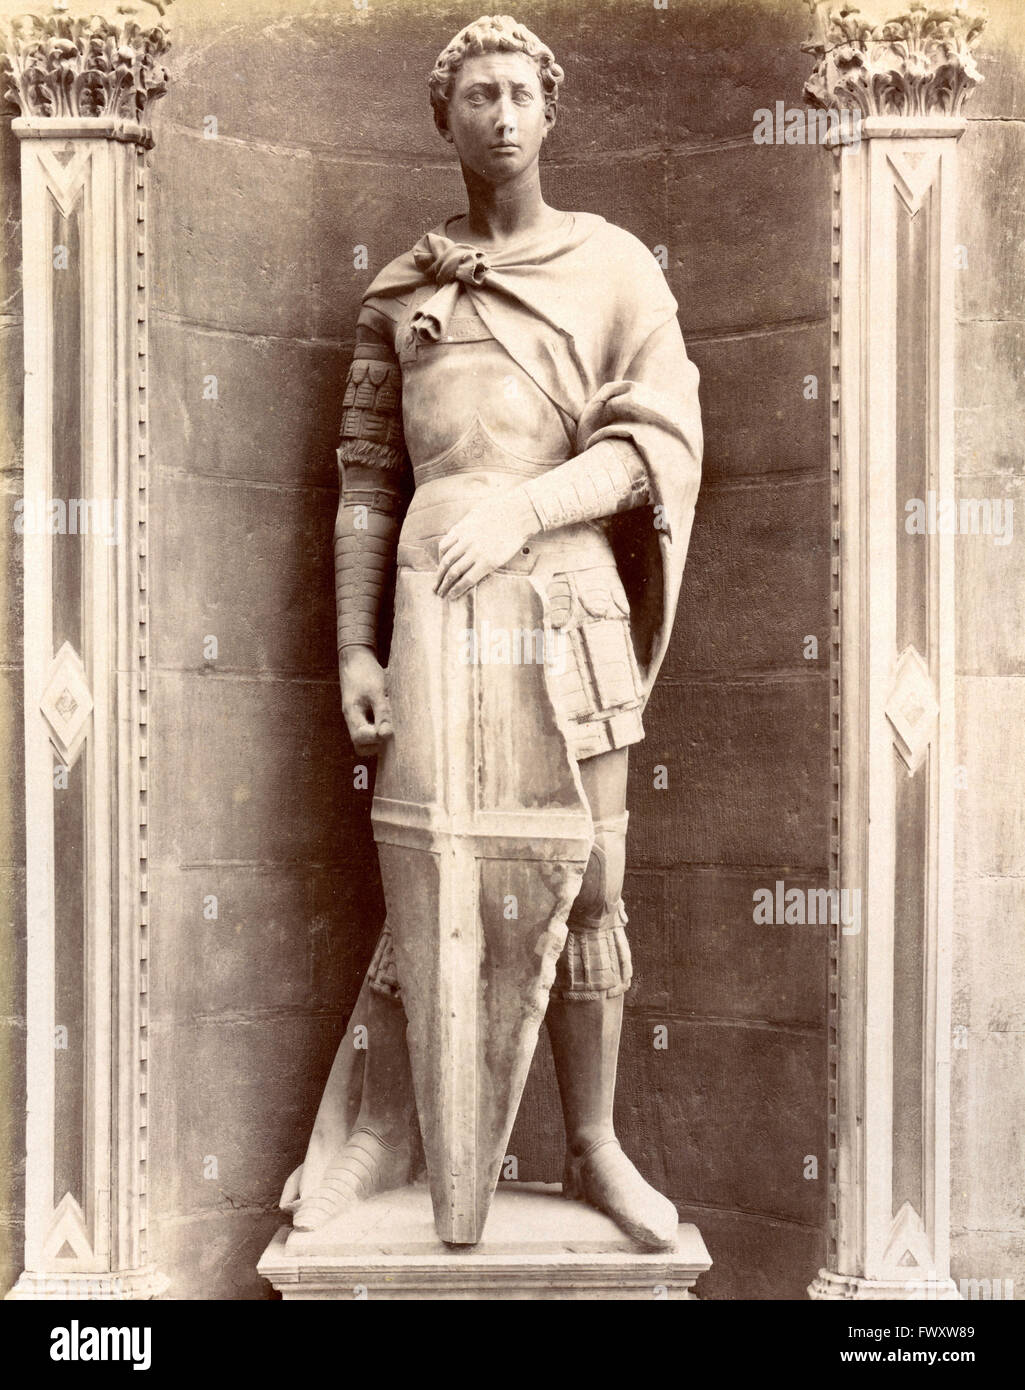 St. George in Orsanmichele, Donatello statue, Florence, Italy - Stock Image